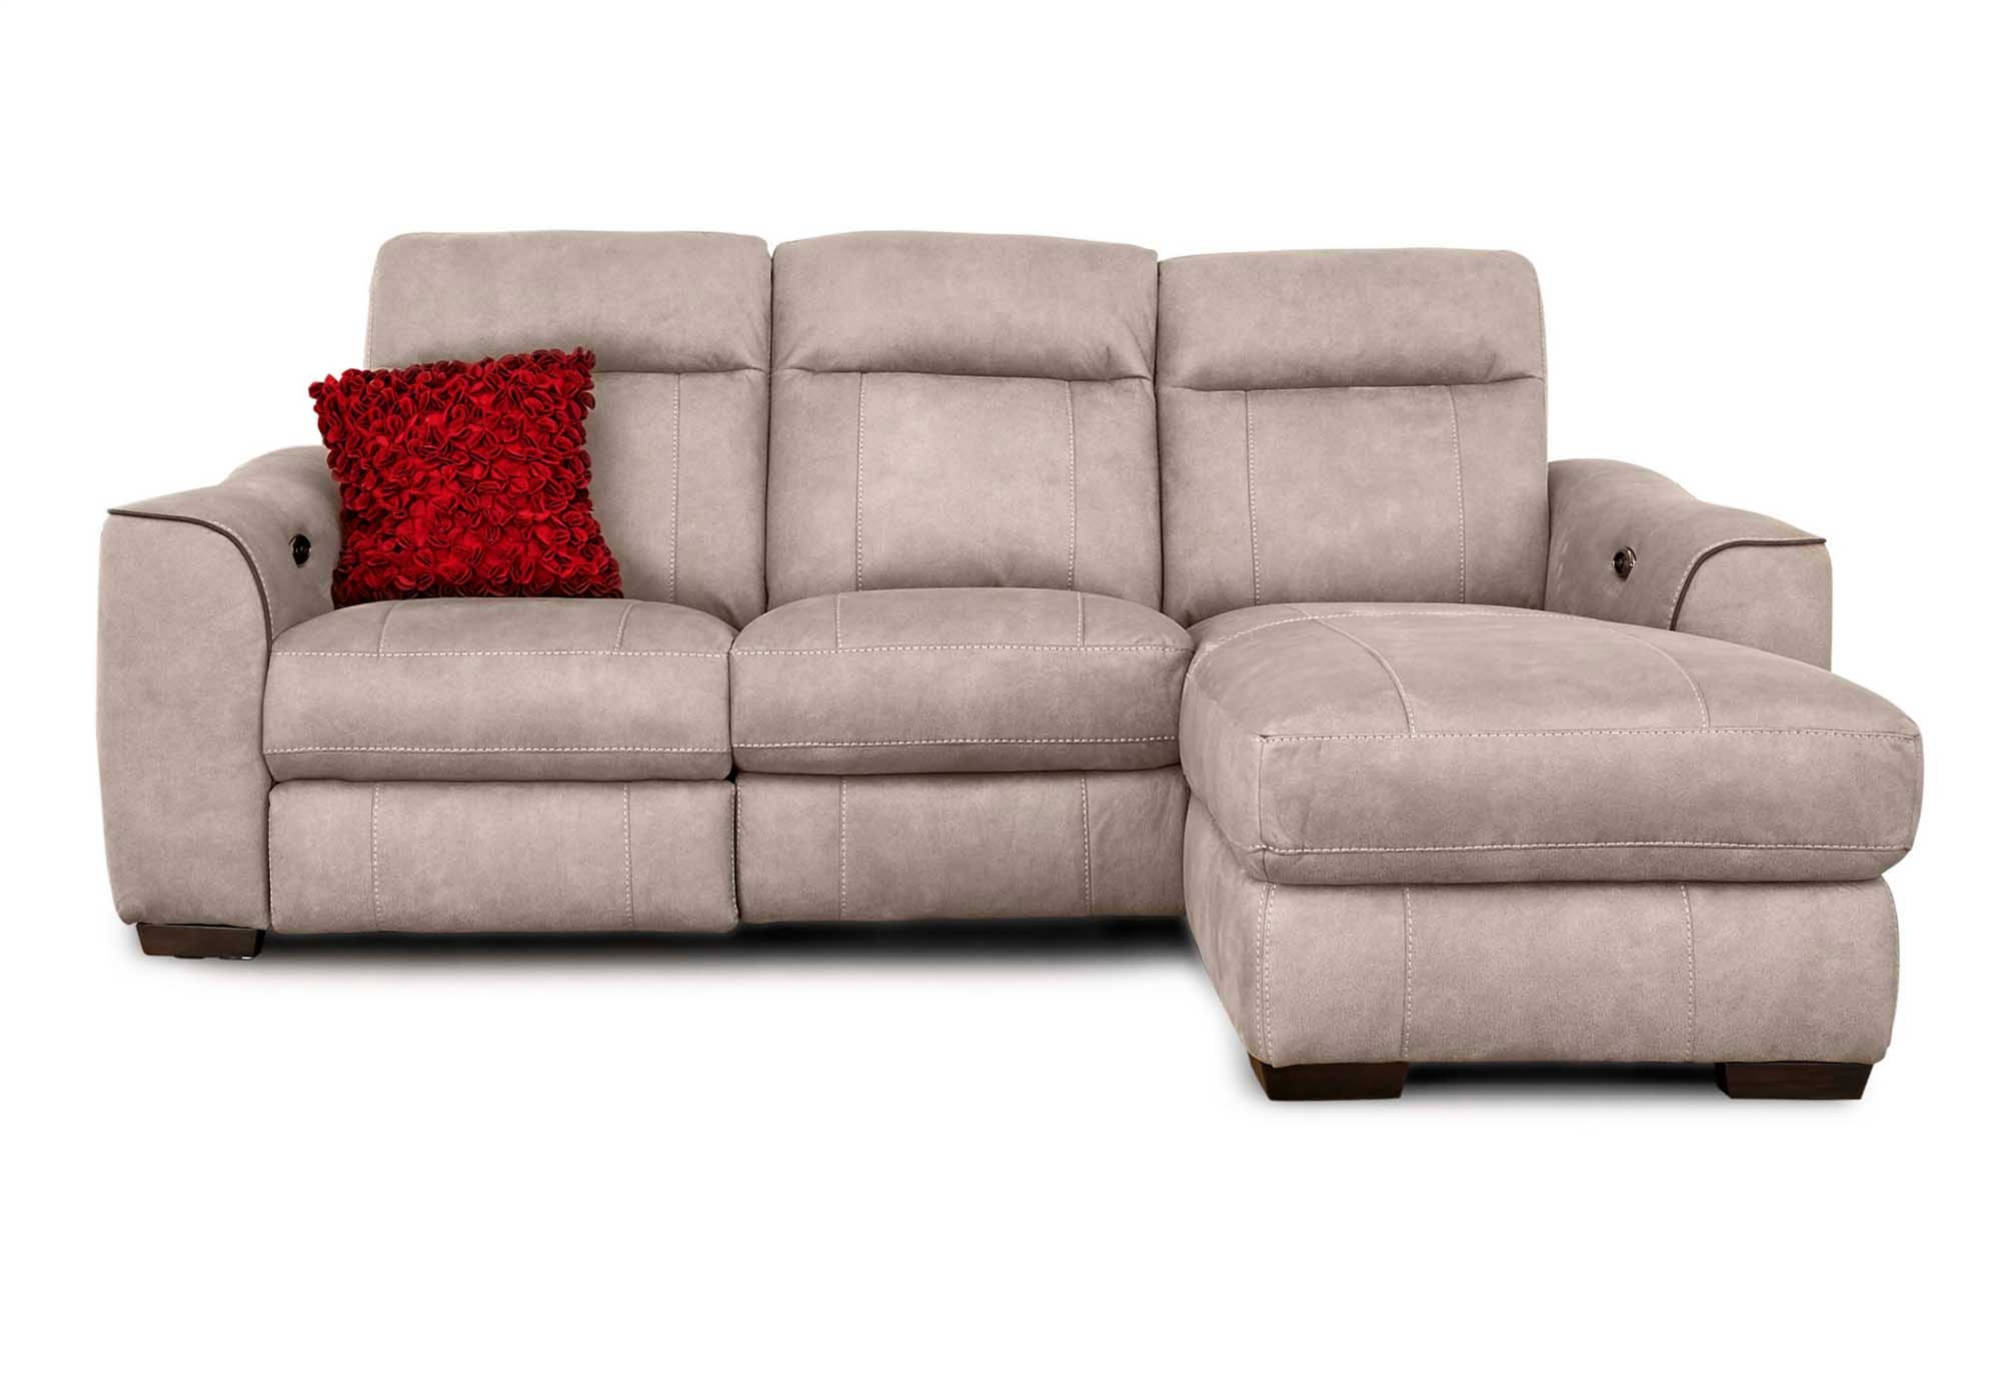 Best Htl Furniture Reviews Homesfeed: red and grey sofa